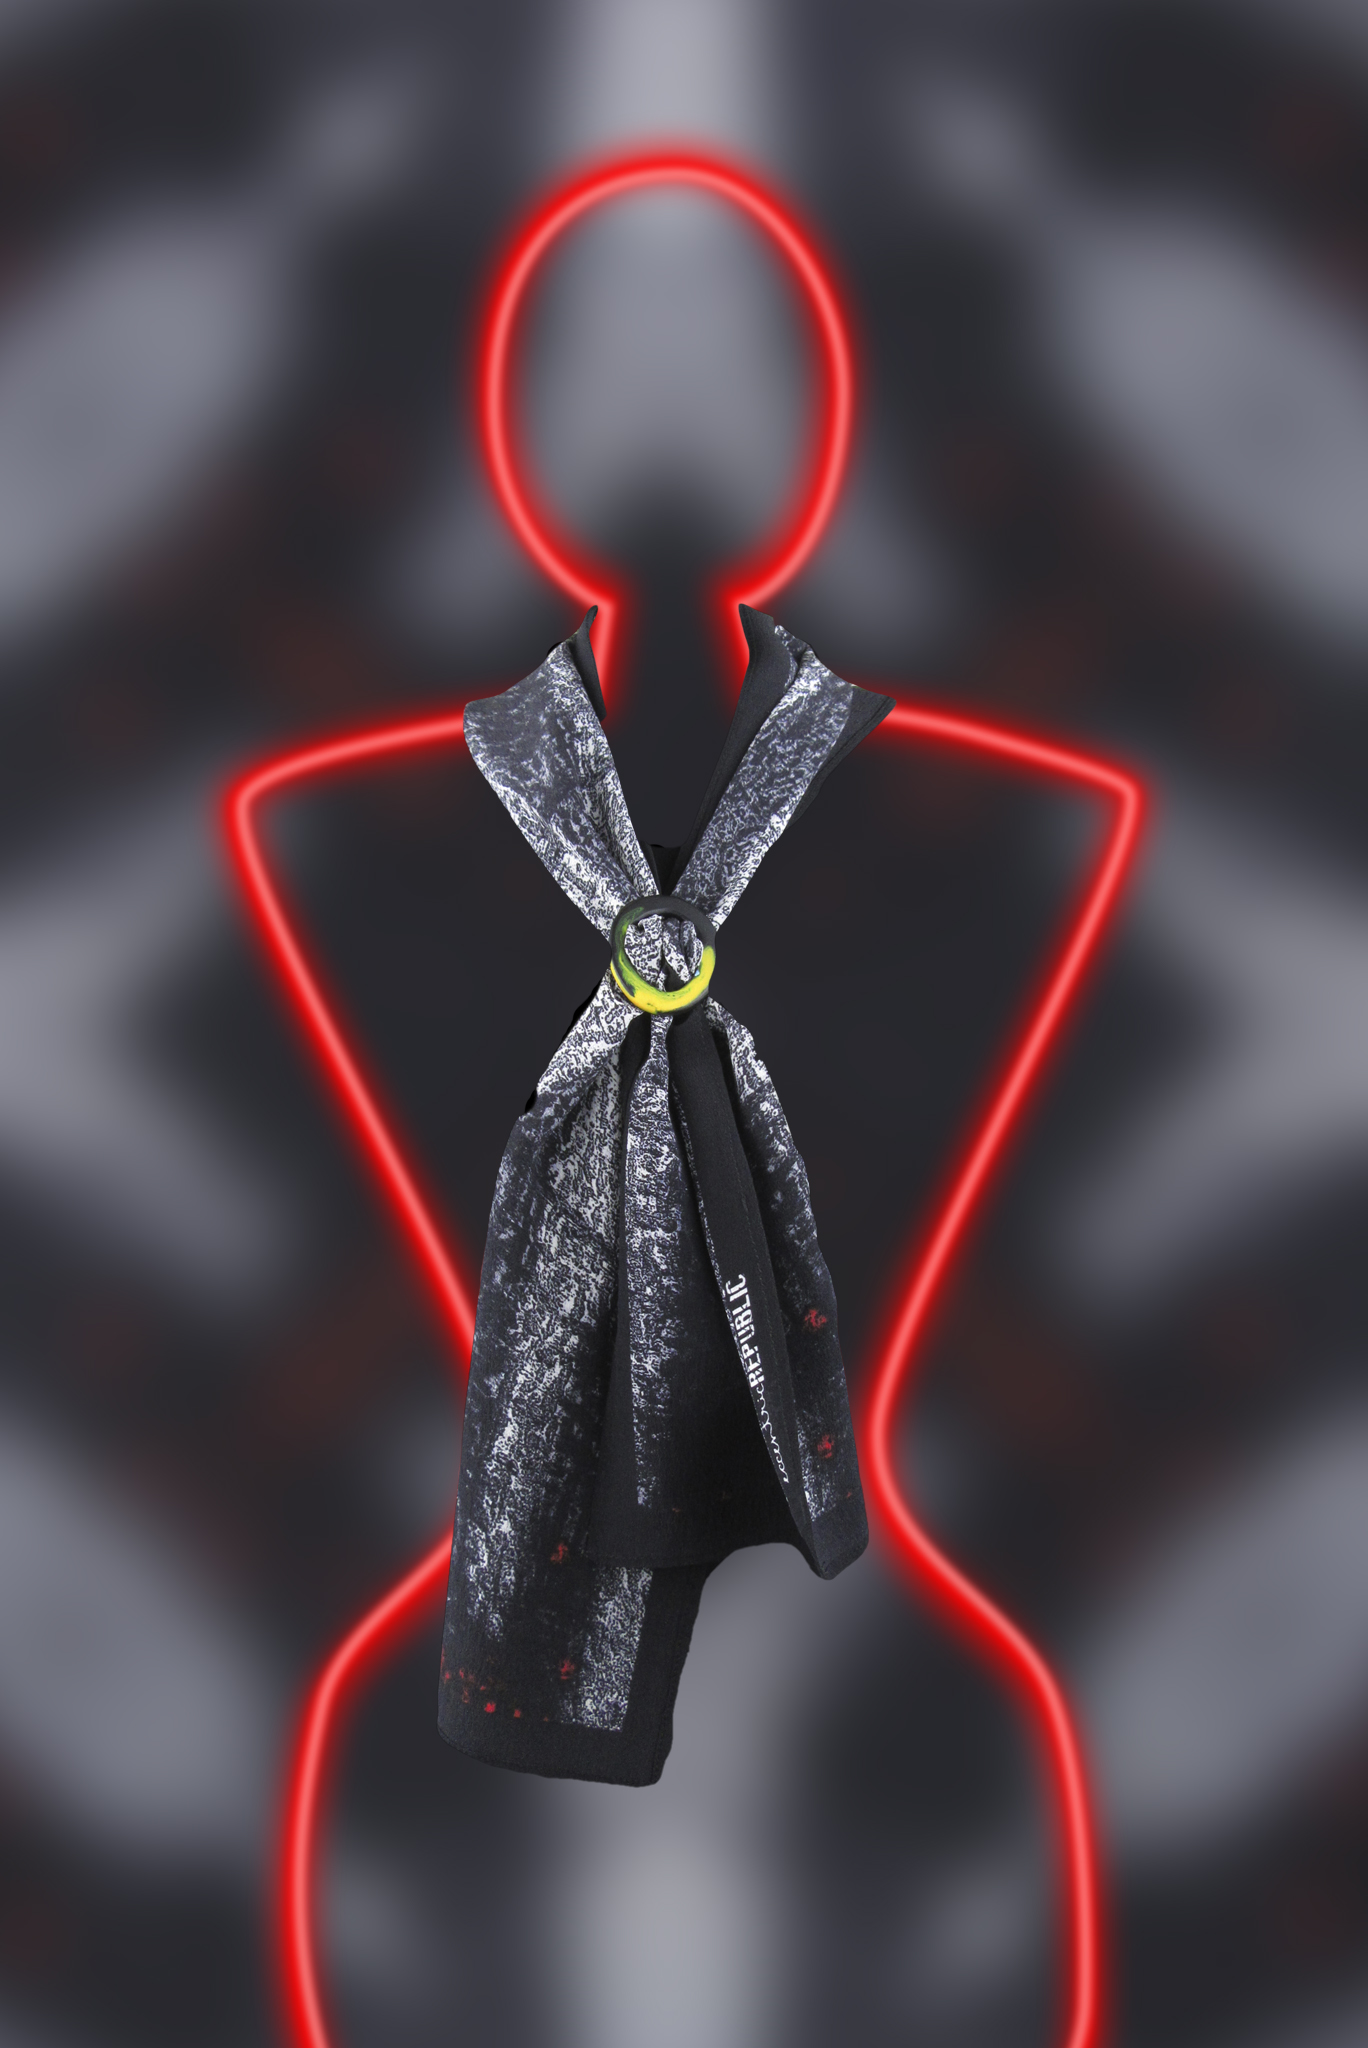 Fold your square scarf in half diagonally or into a rectangle. Drape around your neck and feed both ends up through the top hole of the scarf ring, over the centre bar and down through the bottom hole. Wear the ends at the same length or one up and one down.